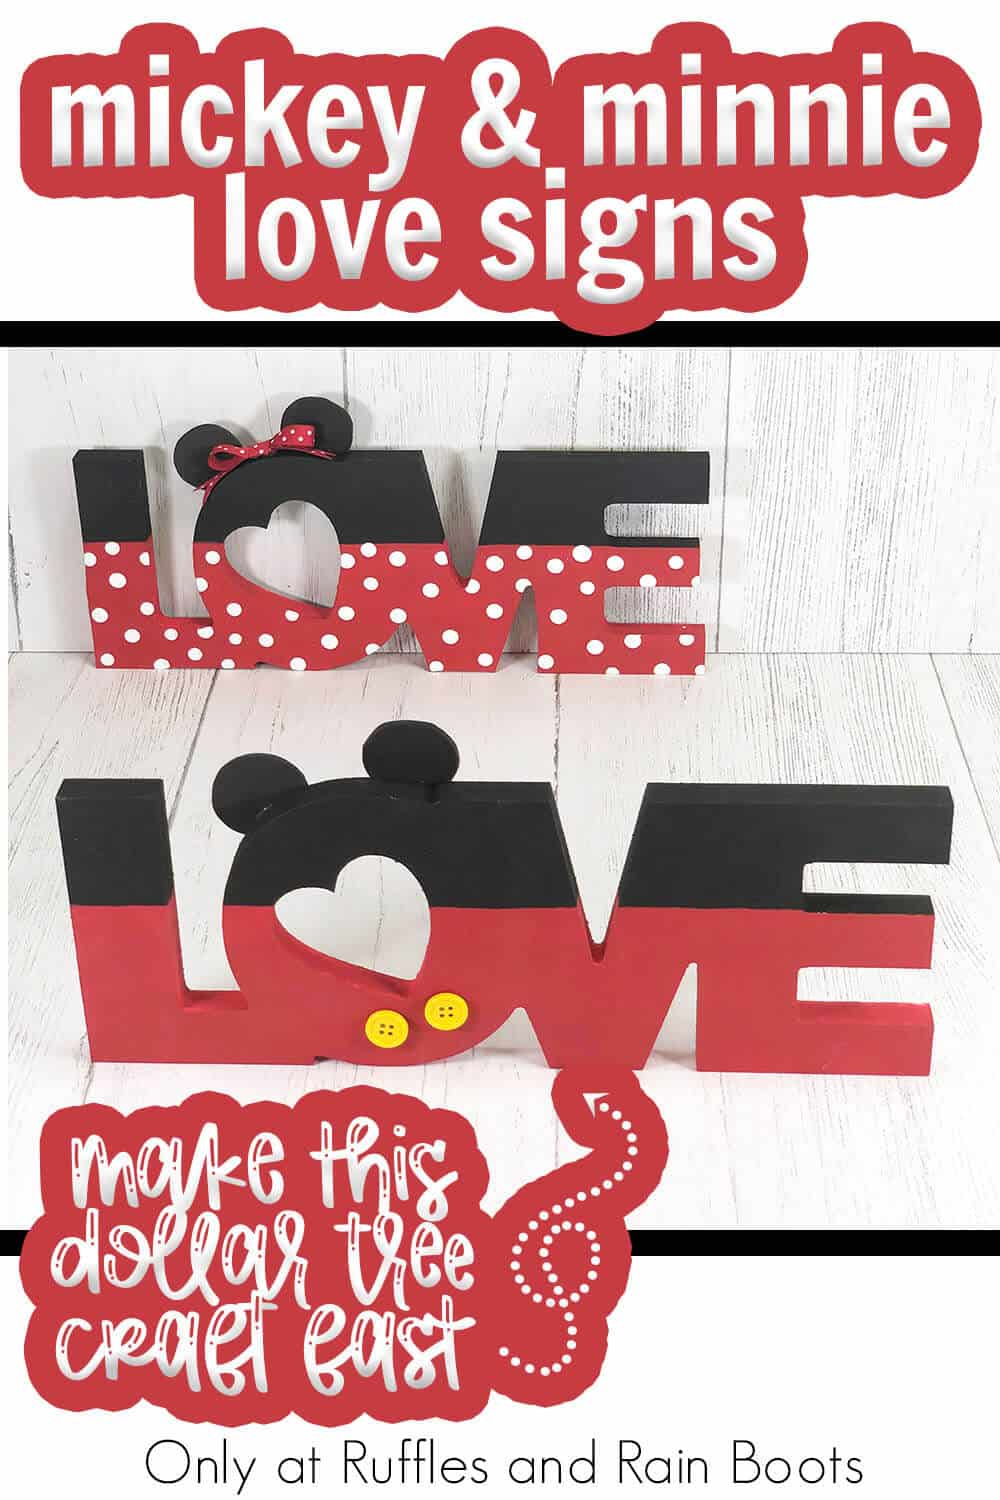 dollar tree mickey and minnie love sign sit with text which reads mickey & minnie love signs make this dollar tree craft fast